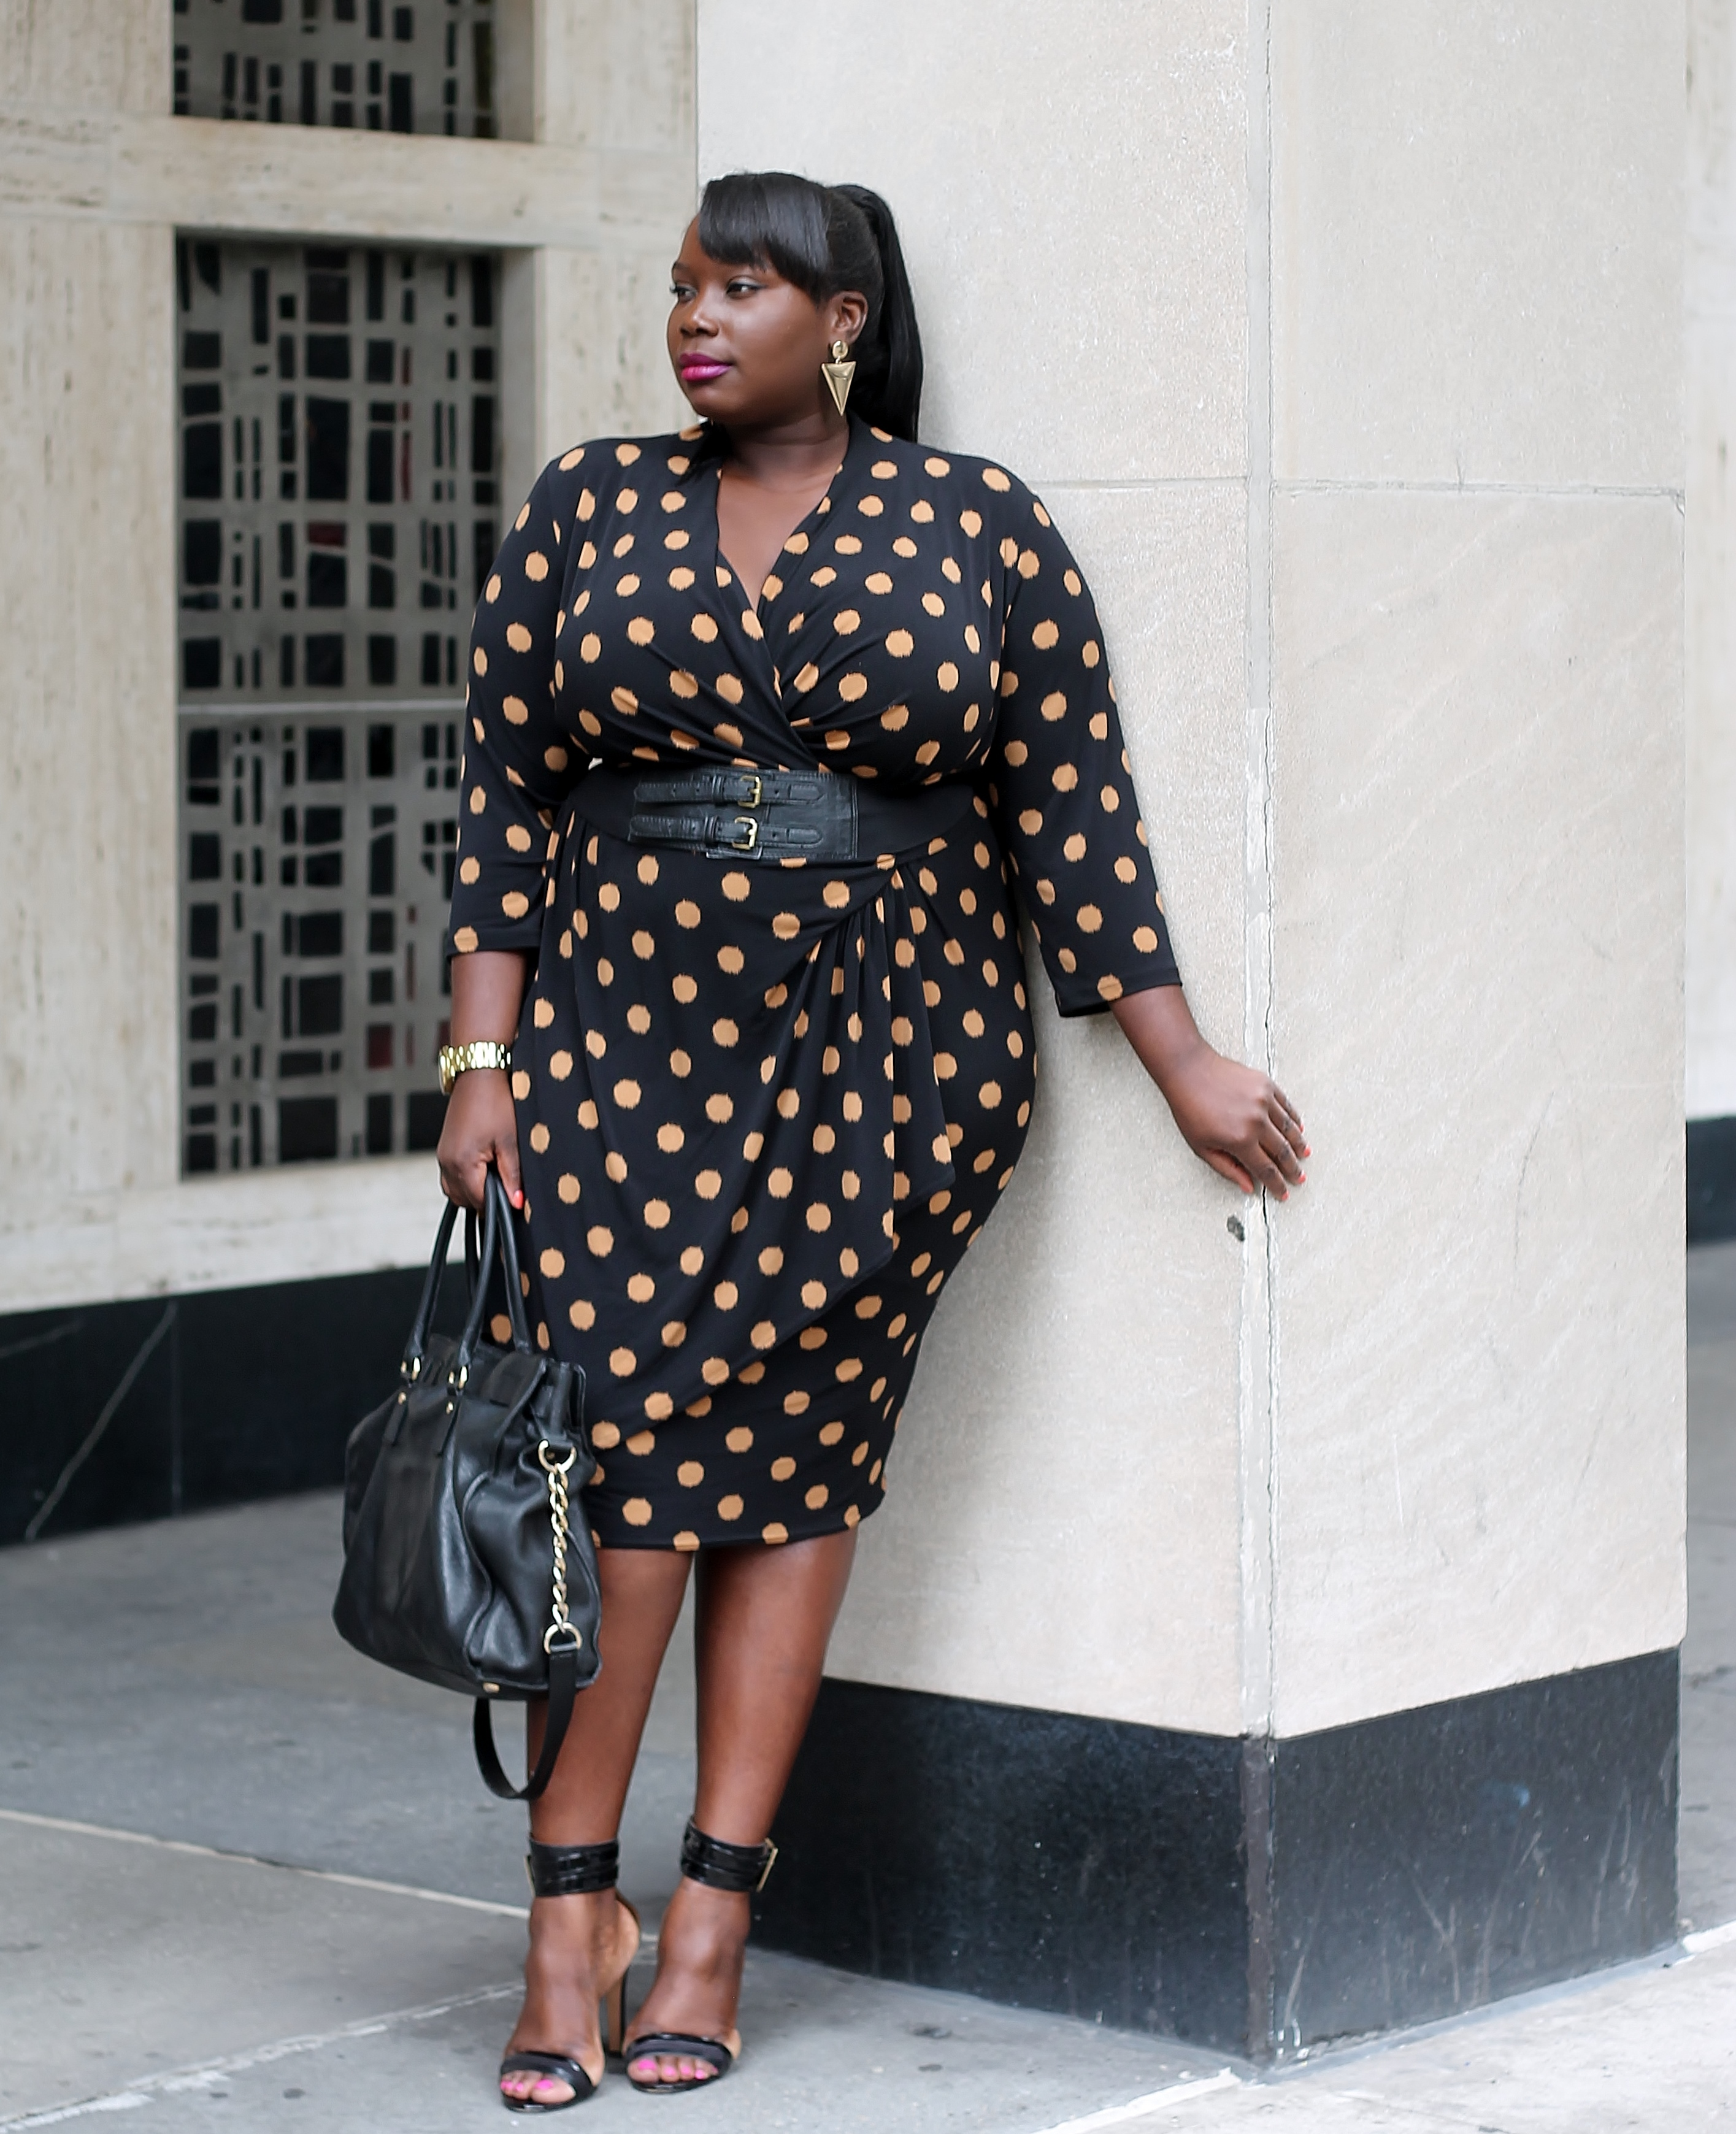 workwear wednesday: 5 bold printed plus size dresses perfect for